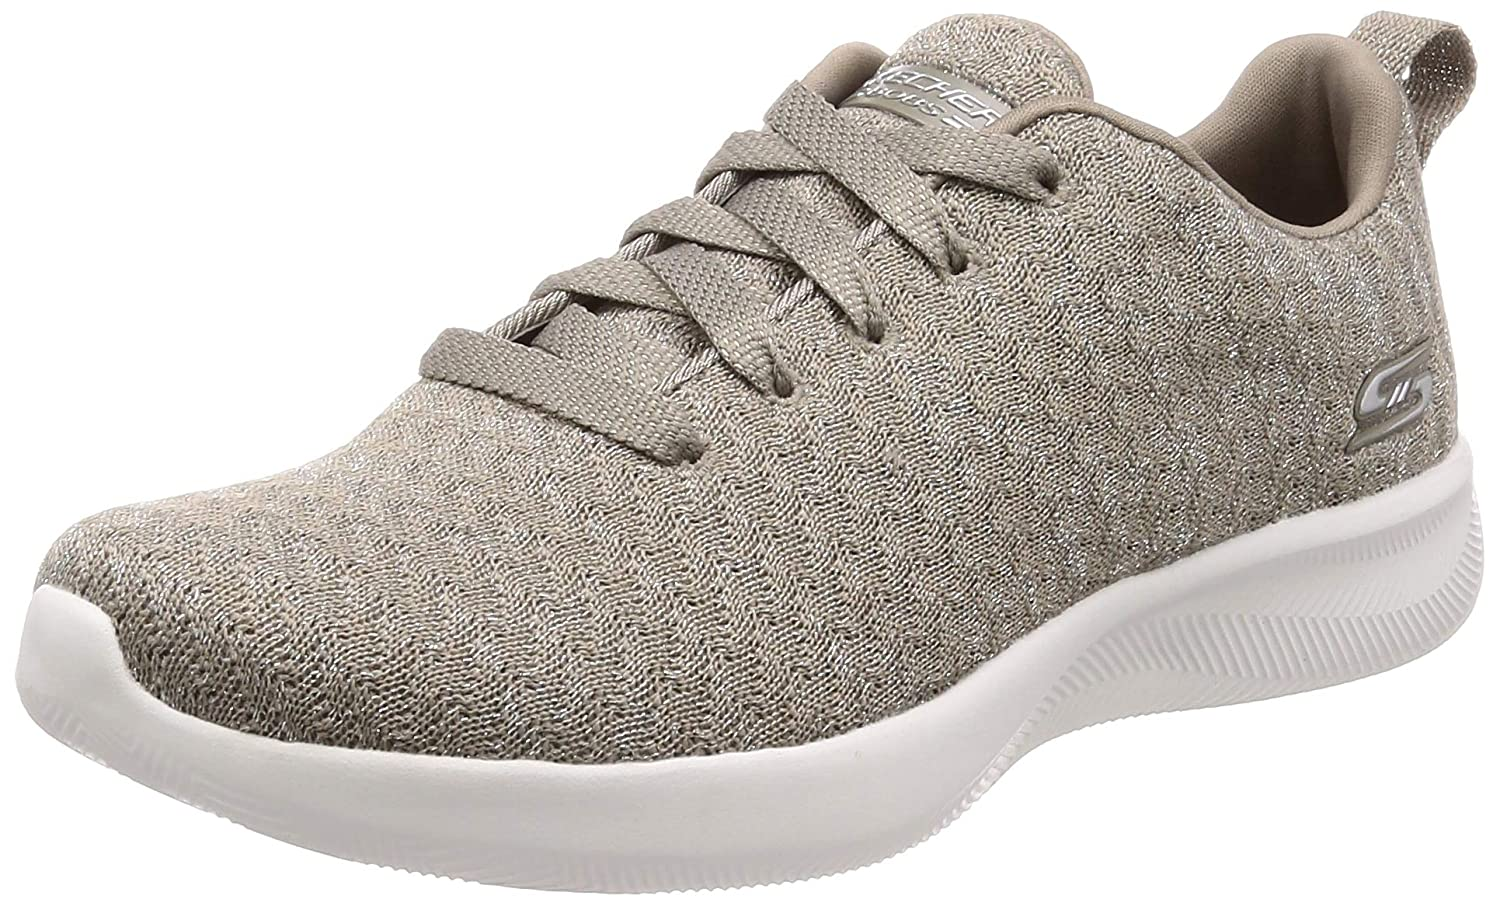 Taupe Skechers Womens Bobs Squad 2 Grand Jubilee Textile Trainers